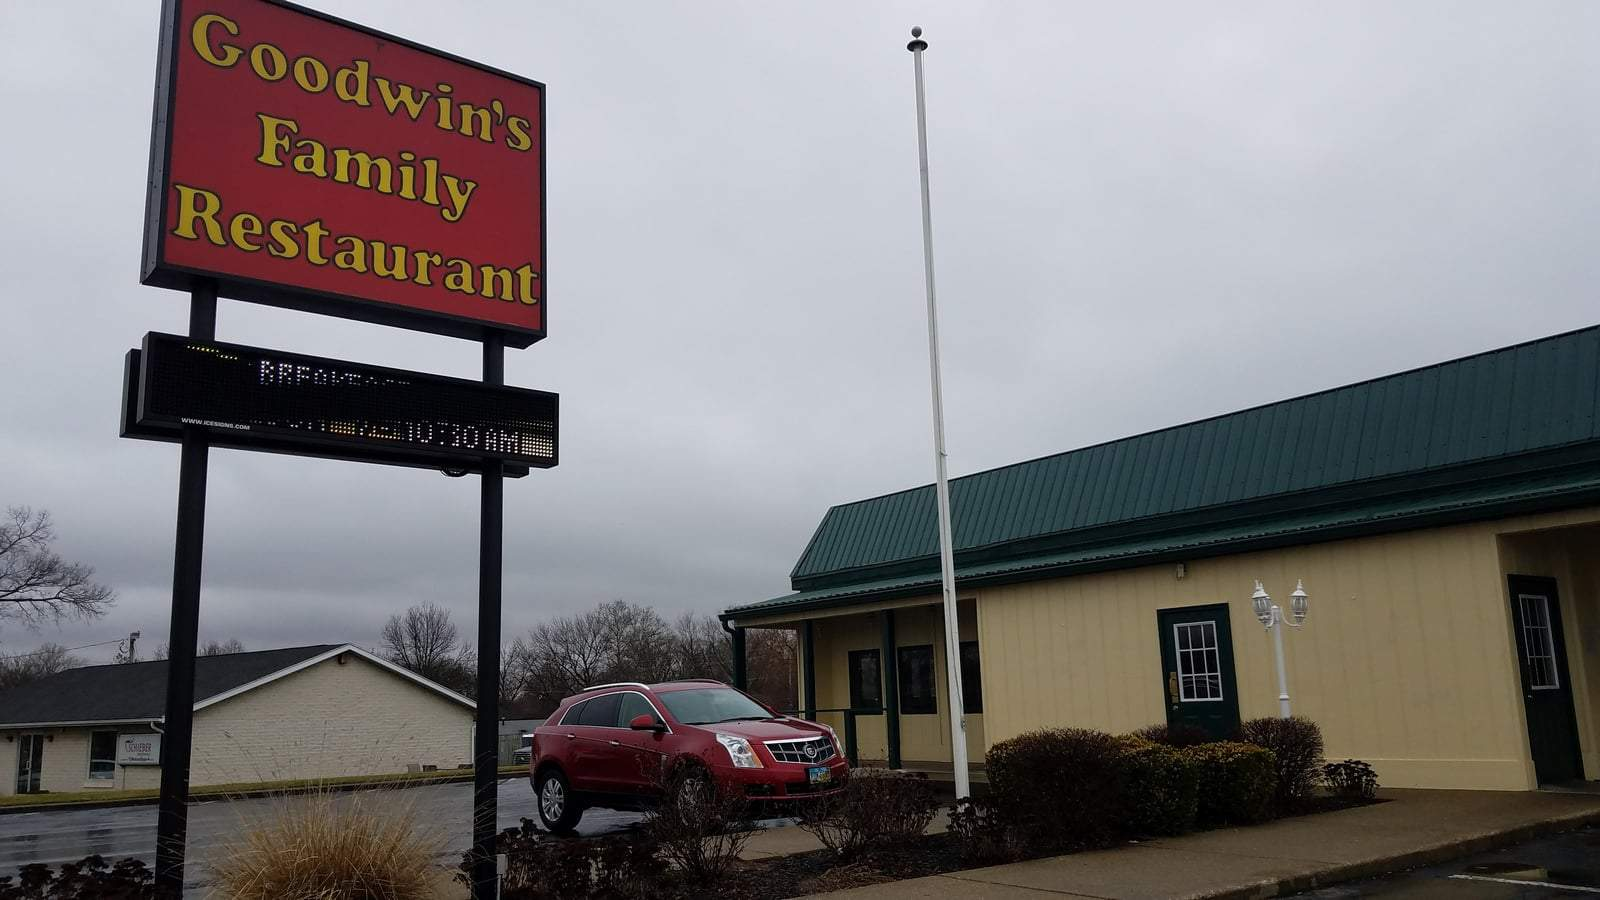 Goodwins Family Restaurant